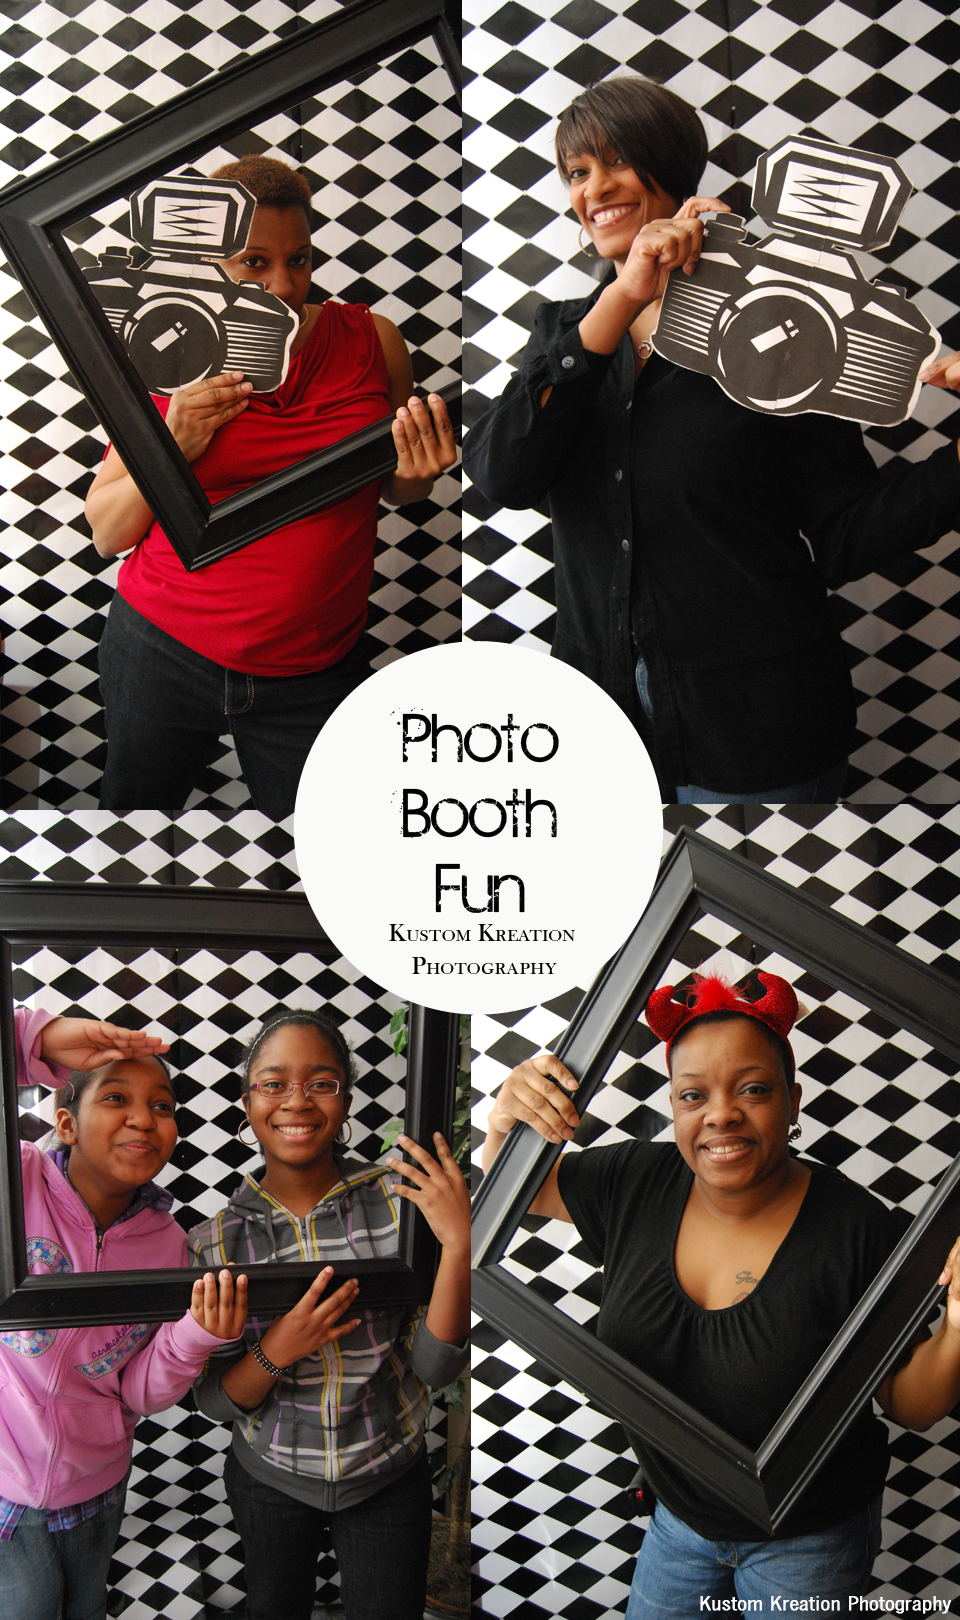 Will Party Dance Photo Booth Fun